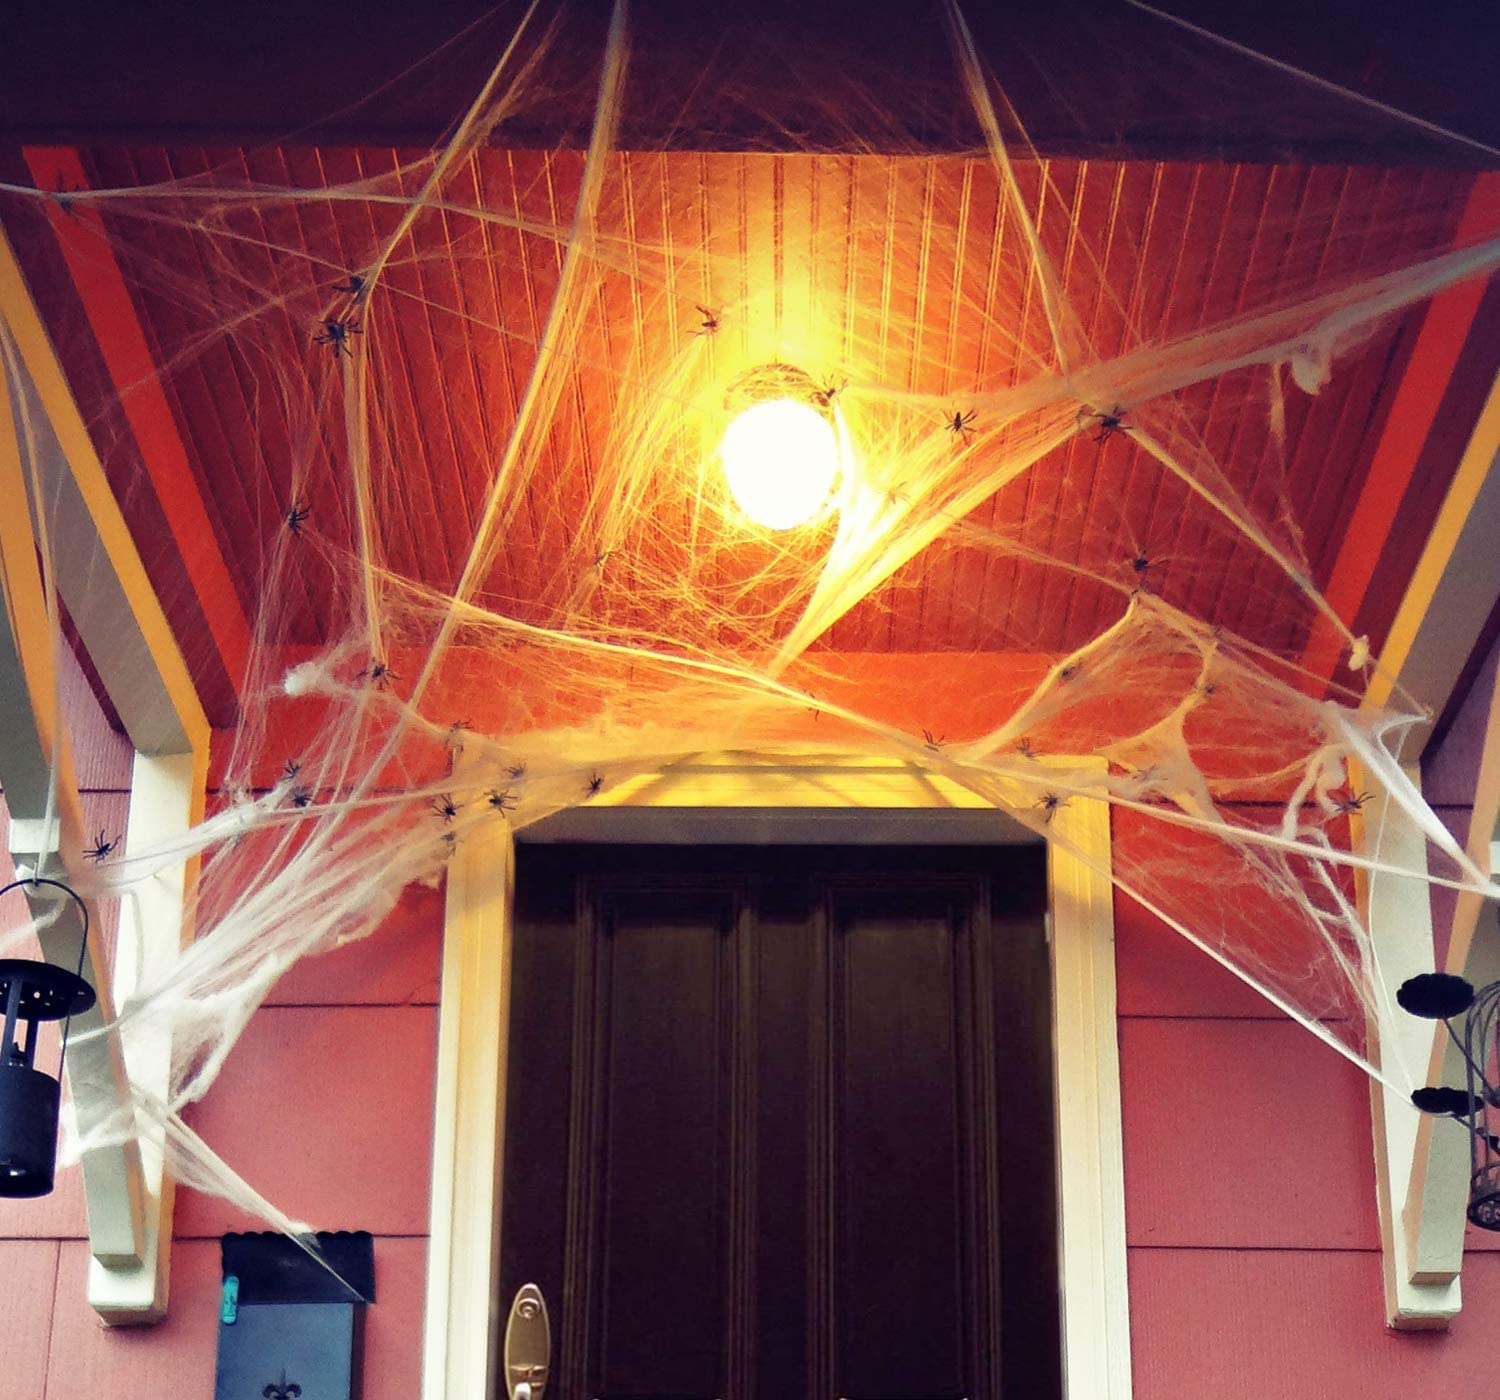 Jshend 1000 sqft Fake Spider Web Halloween Party Outdoor Decorations Supplies (JH01)